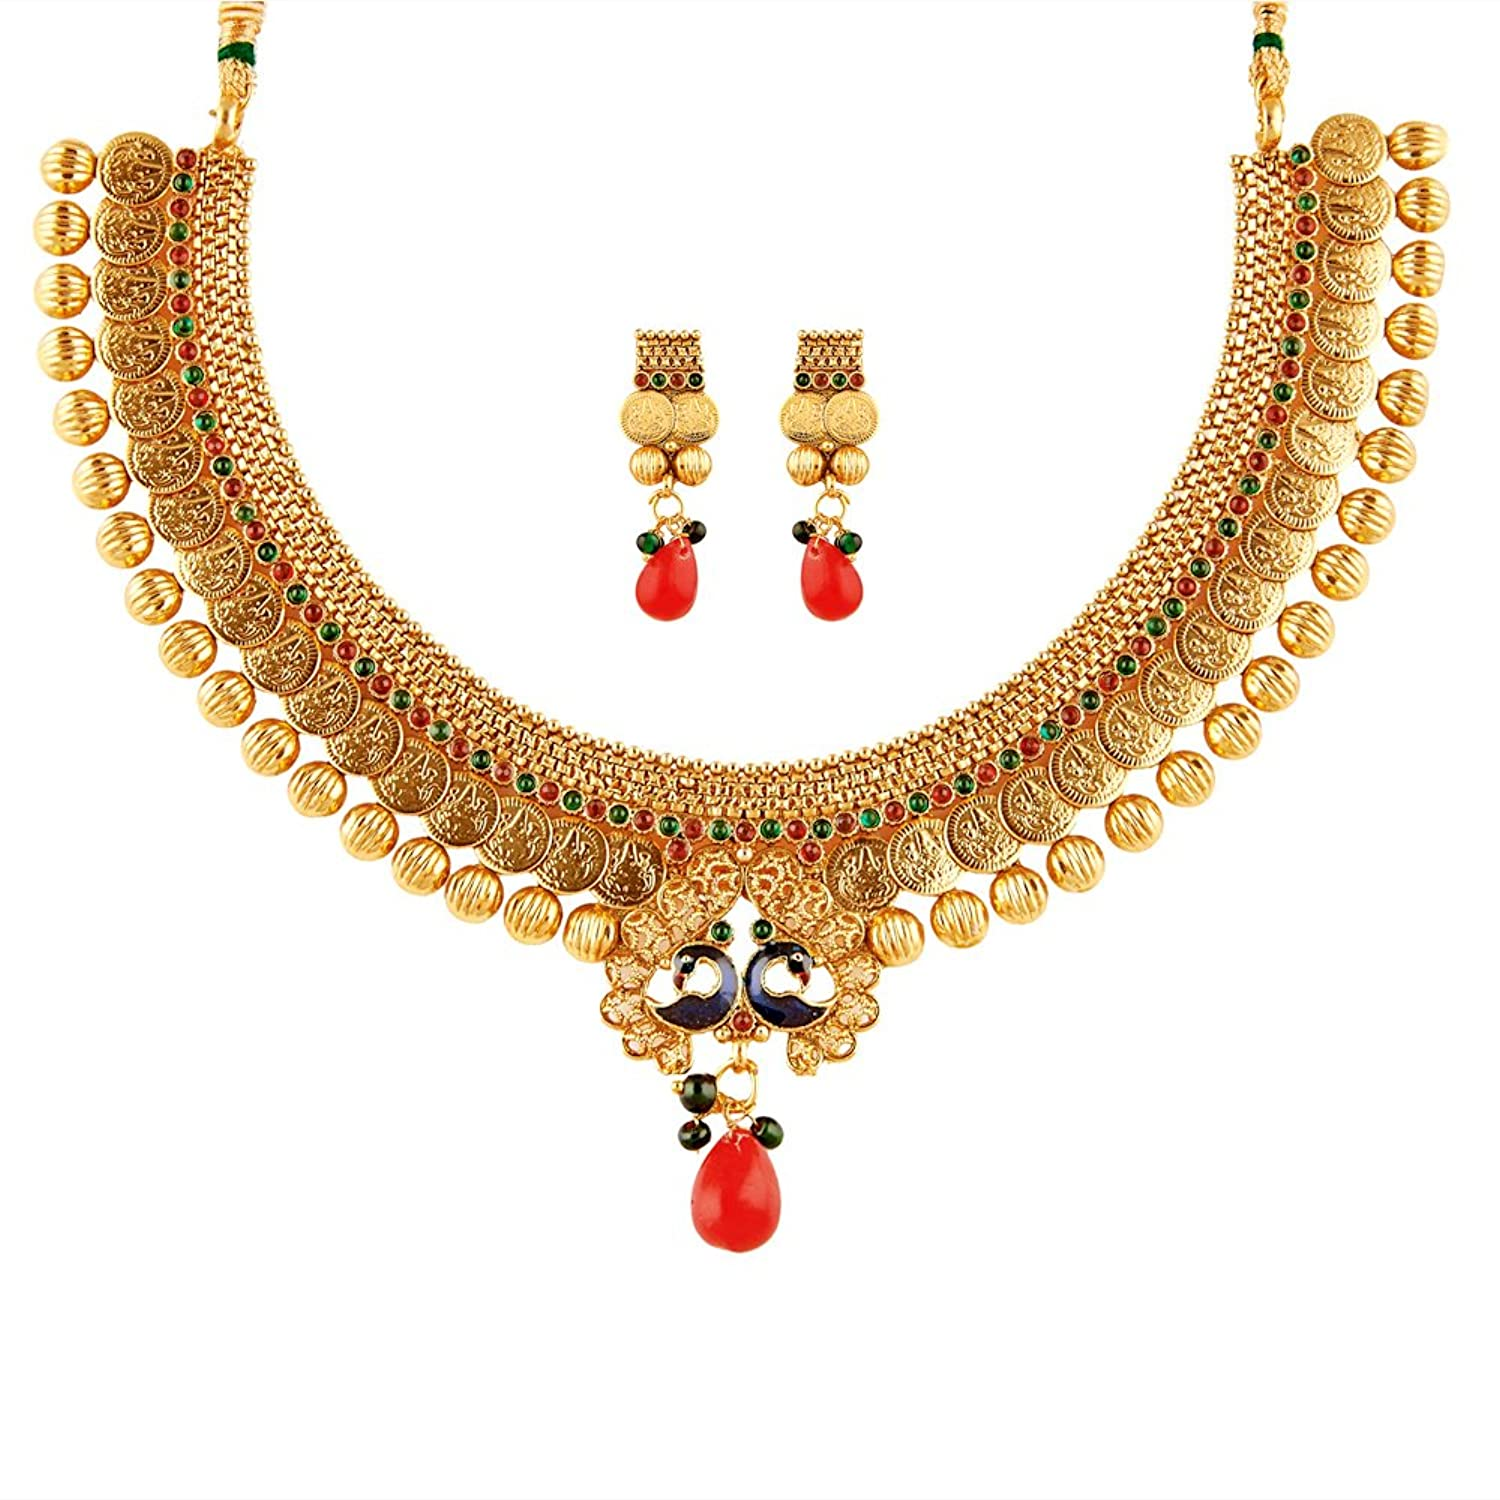 fashion pin jewellery web jewelry indian hosting domain name and registration